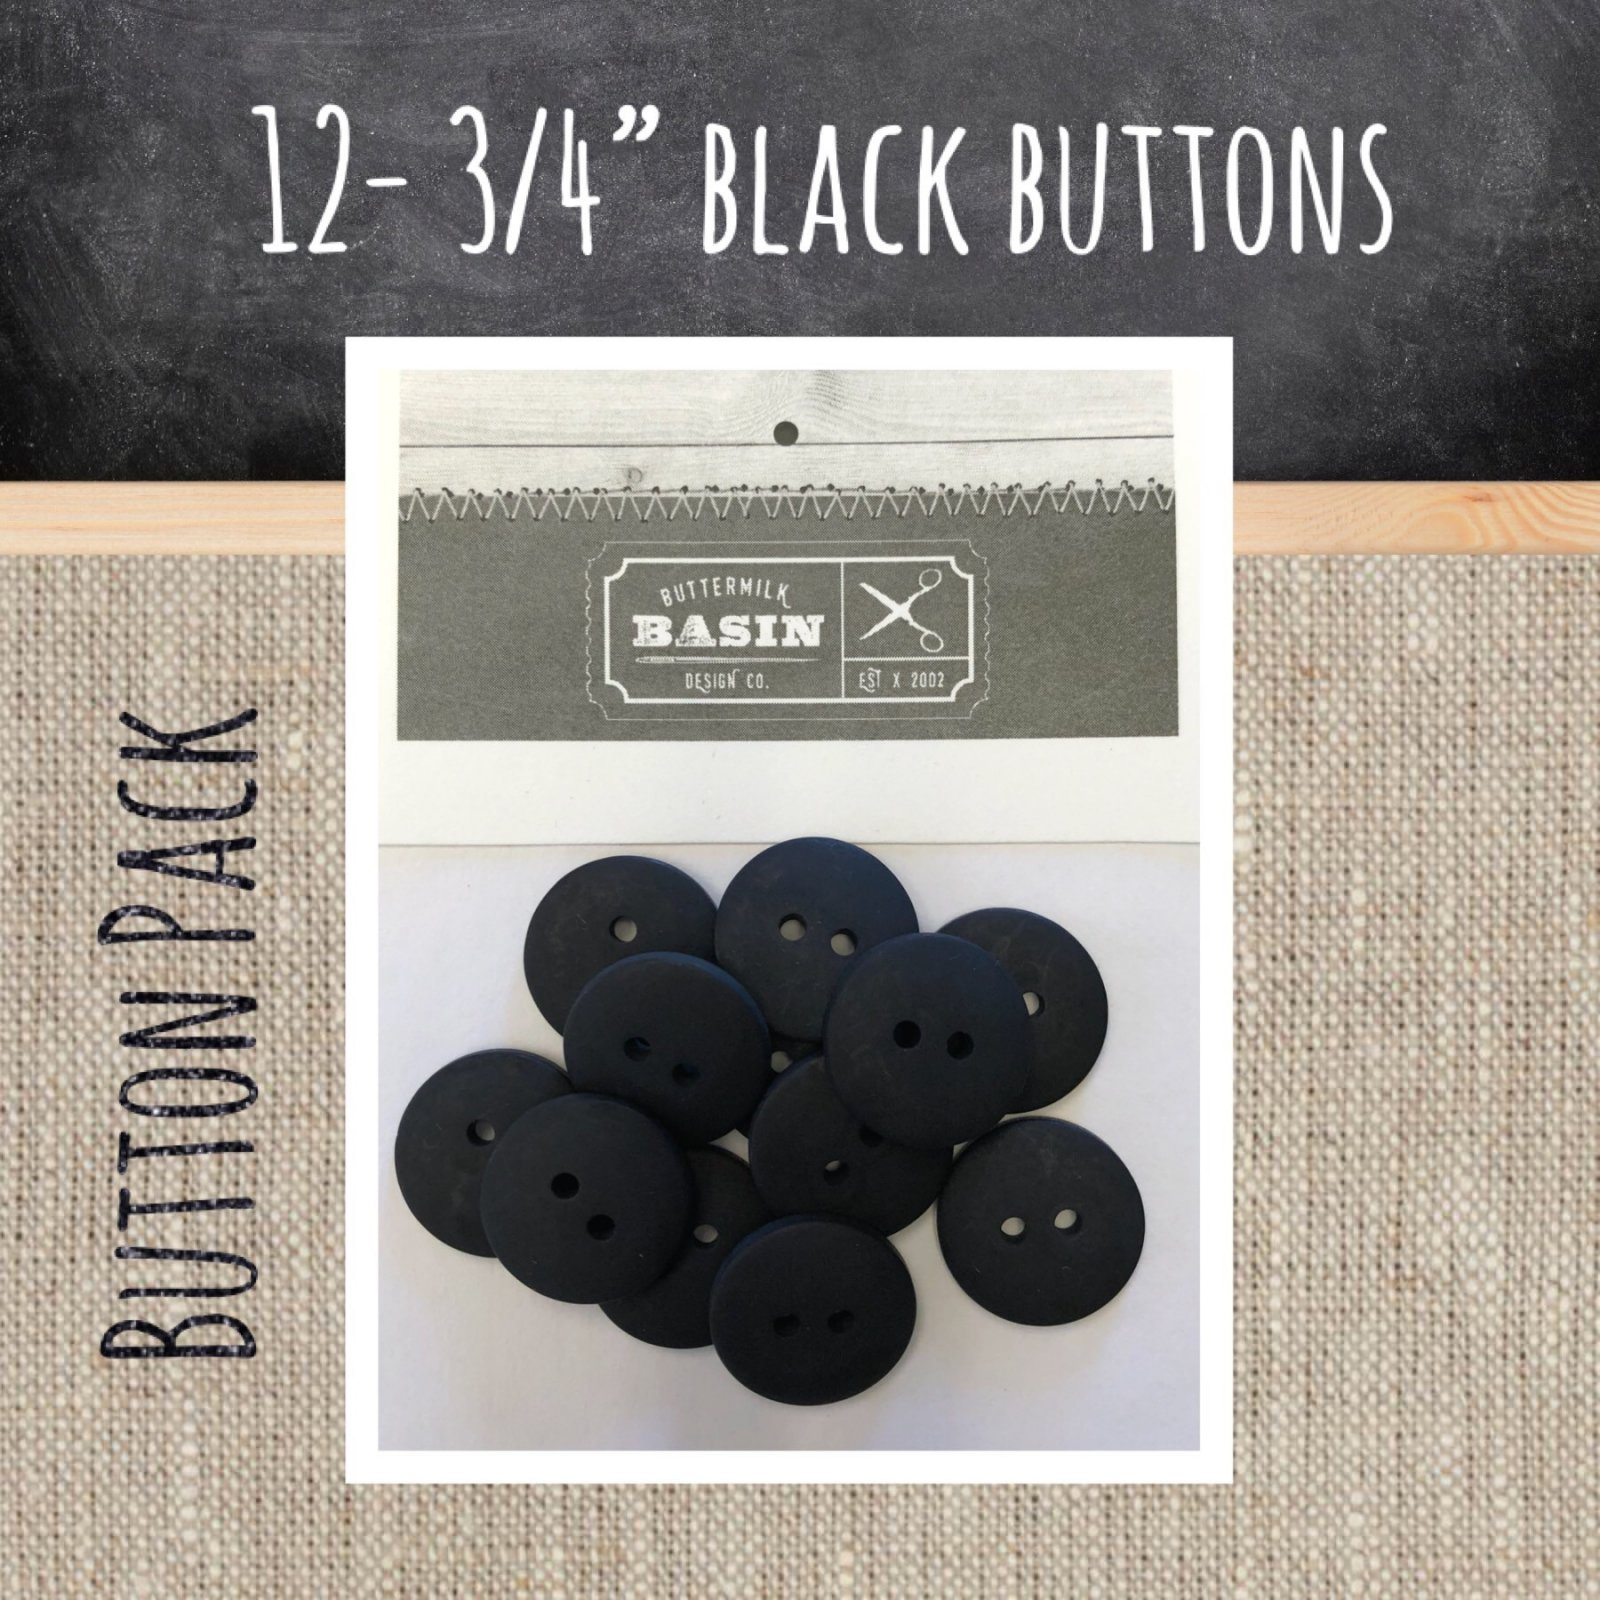 3/4 Black Button Pack